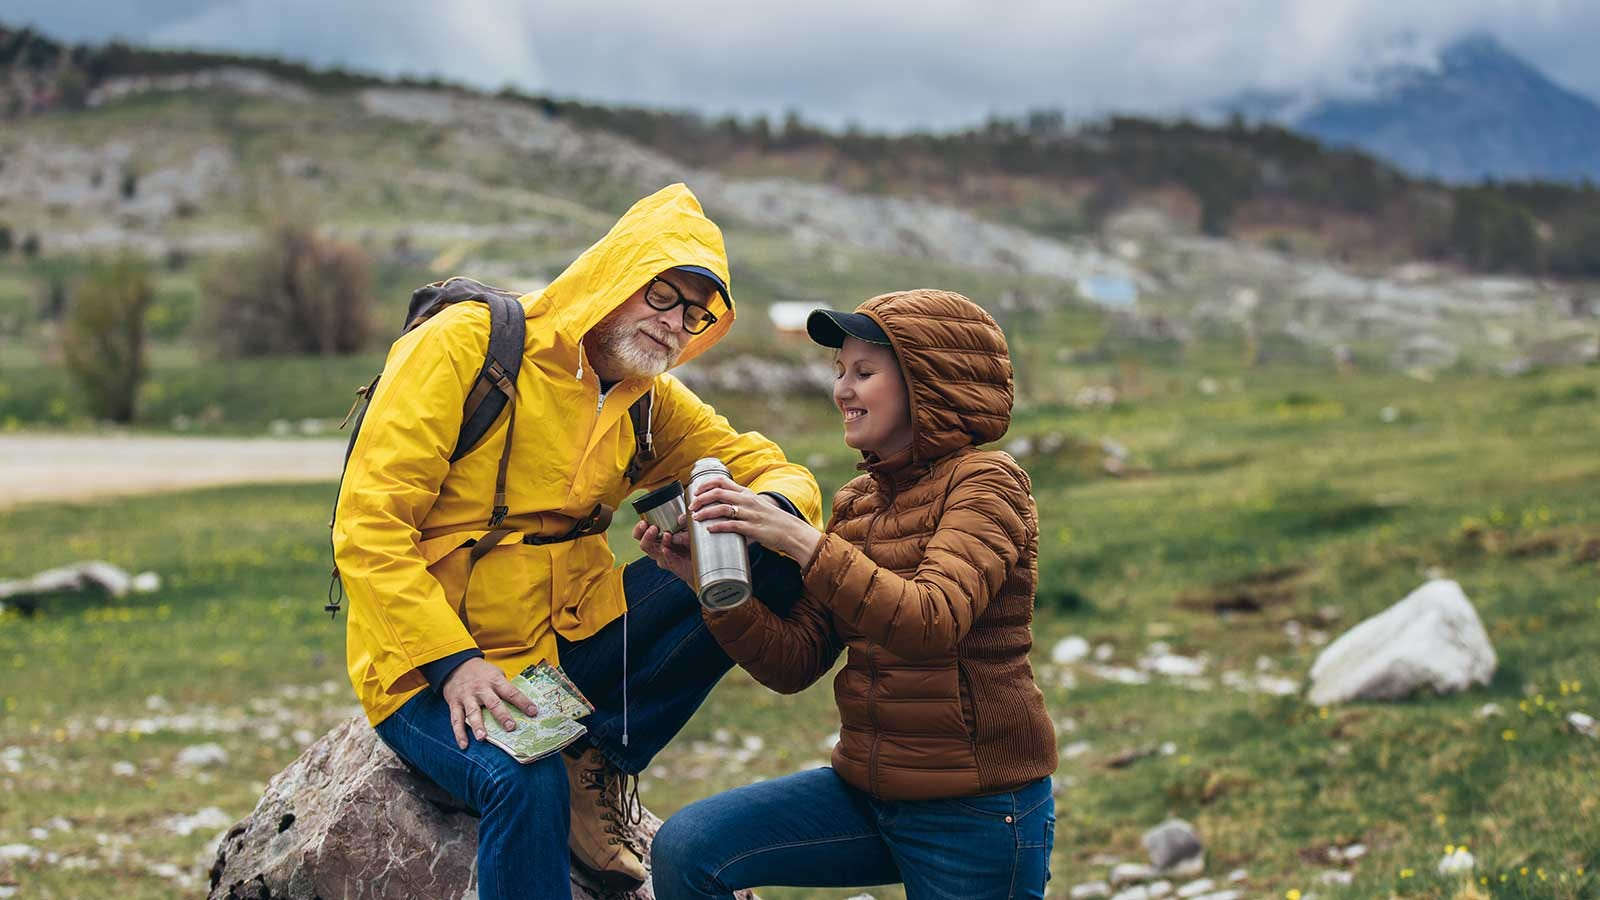 A couple in mid-season cool weather gear, stopping to enjoy some coffee on a hike.